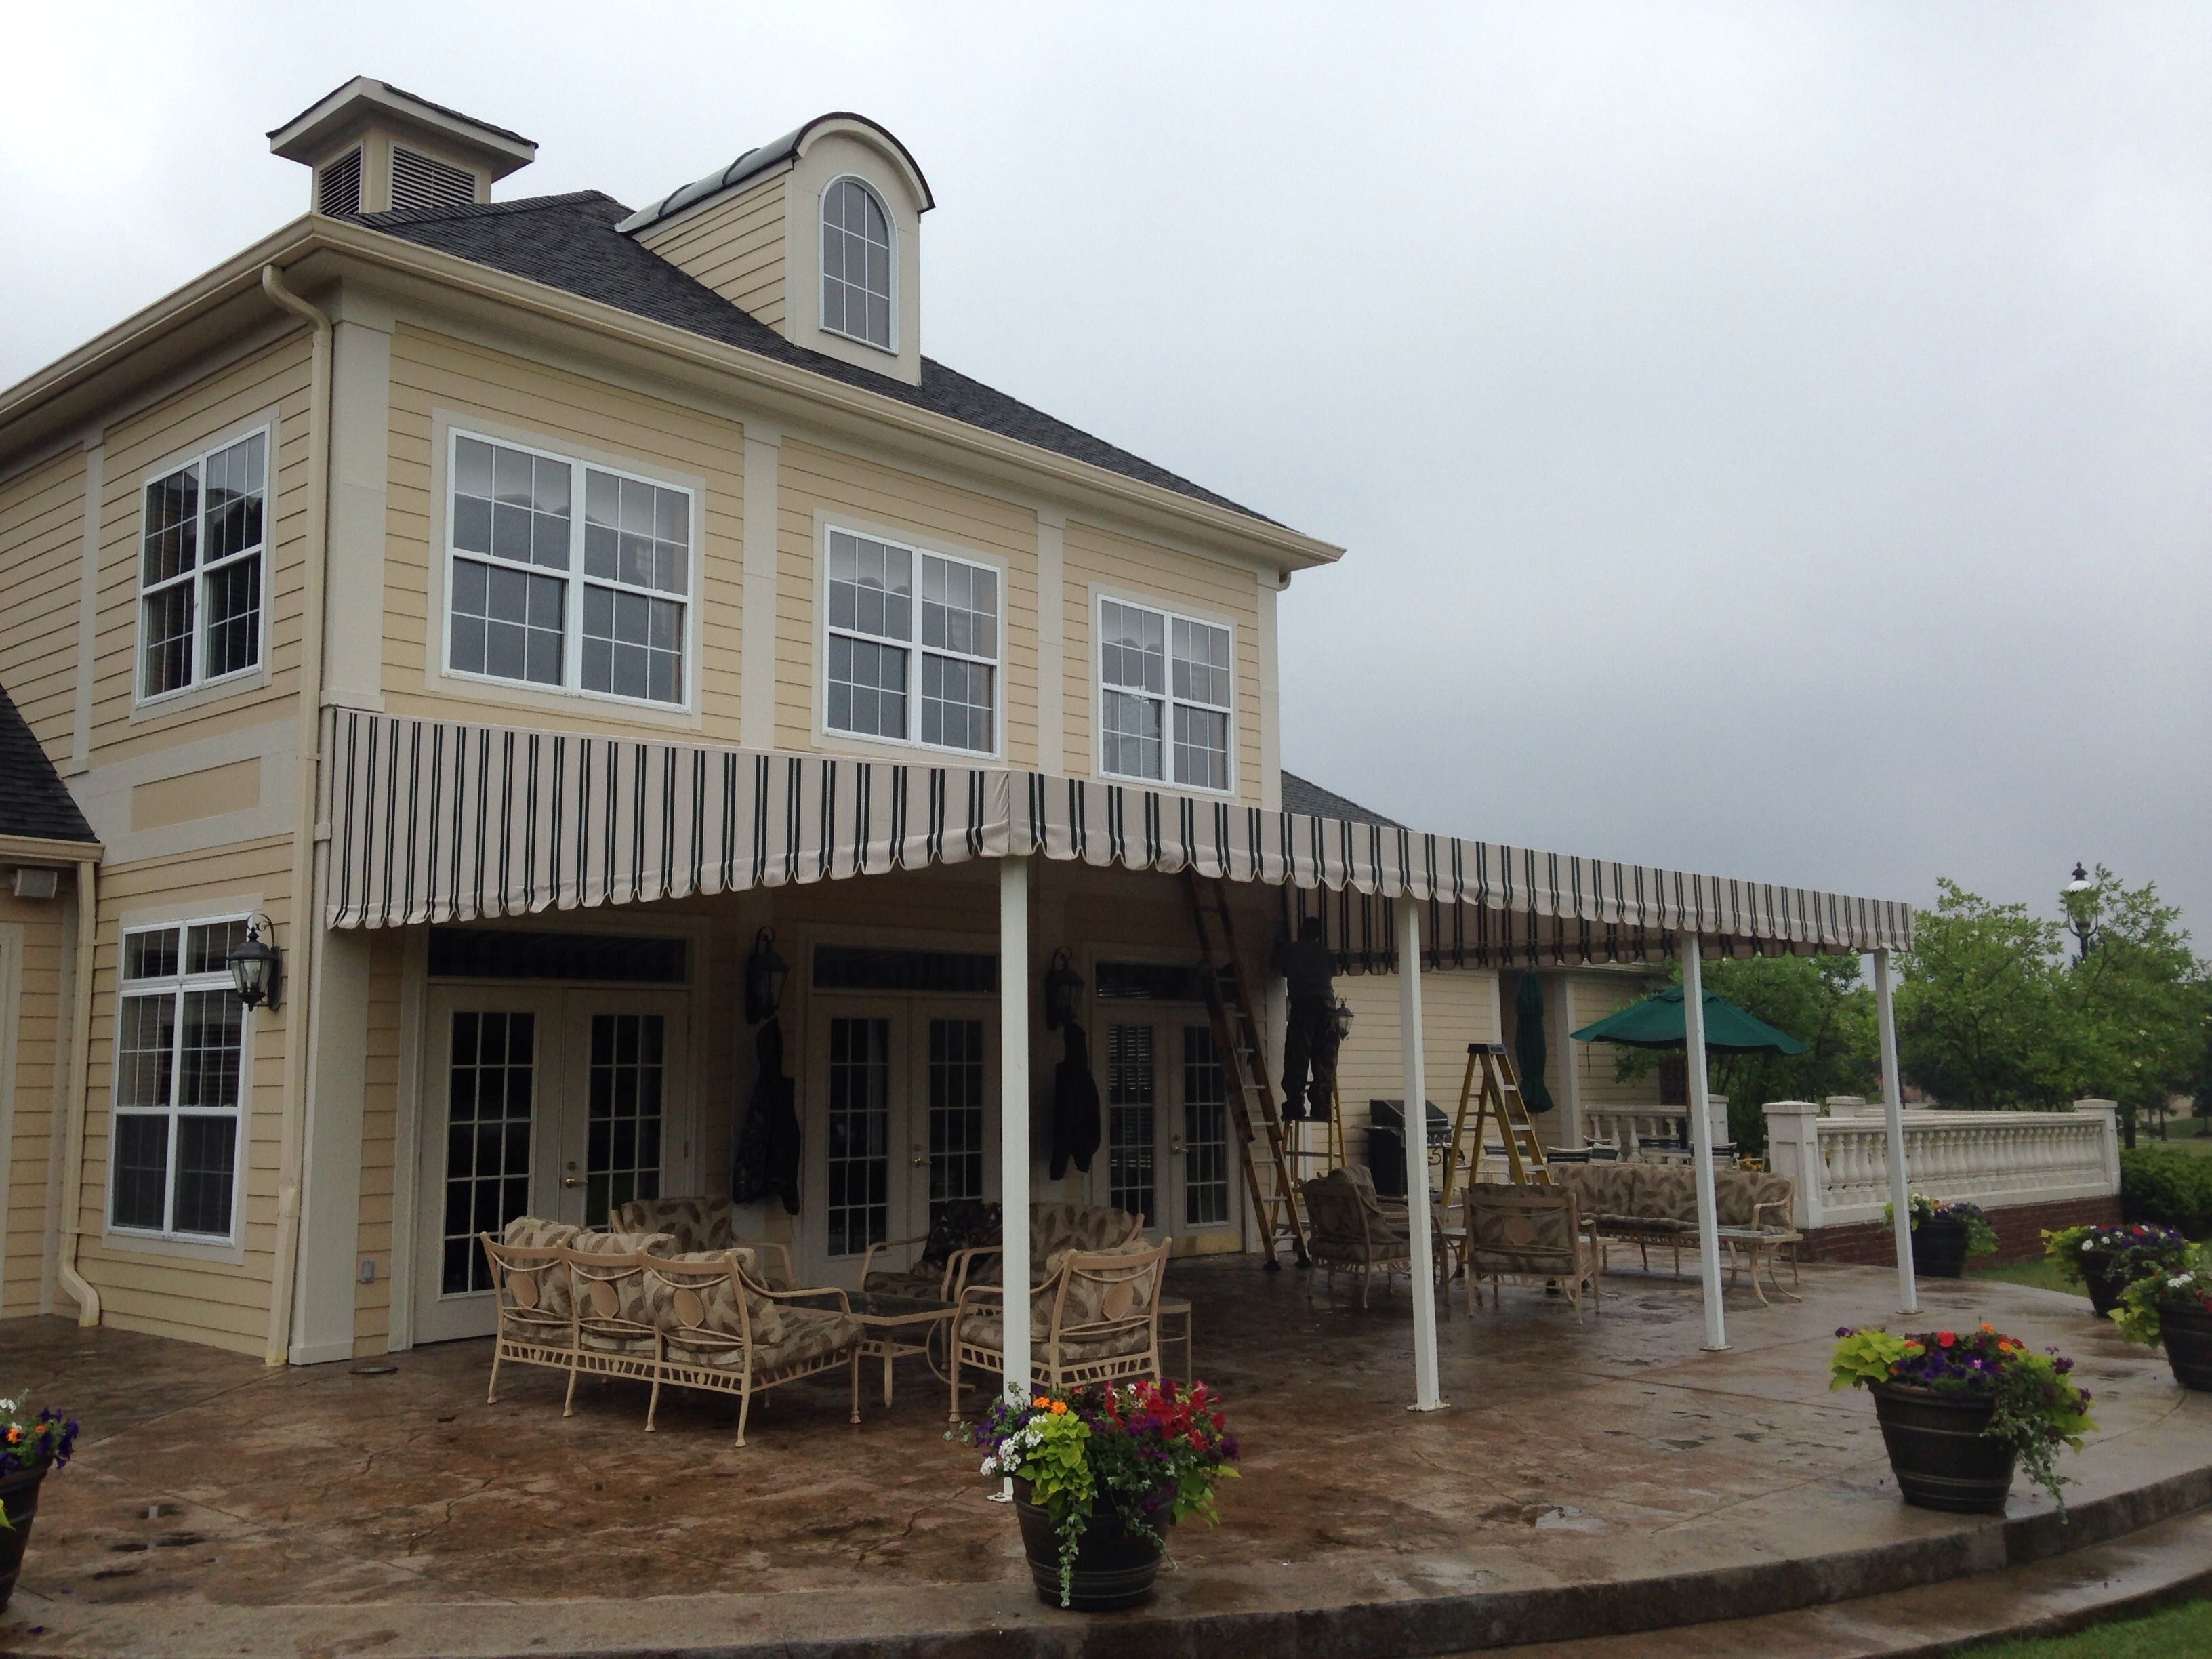 By Queen City Awning House Styles Awning Outdoor Decor